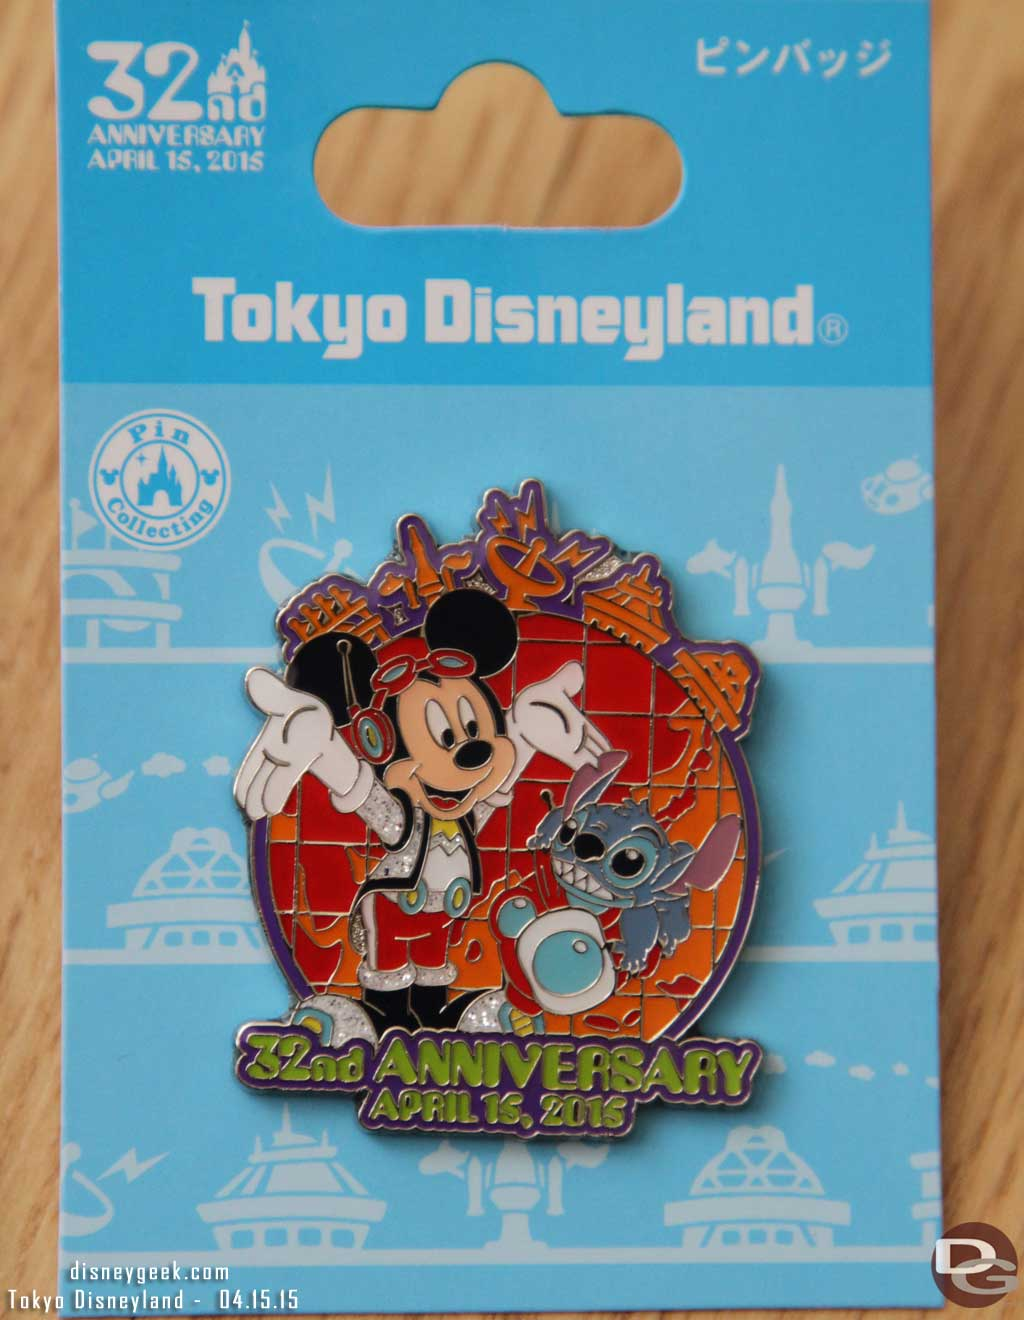 One of my two purchases a 32nd anniversary pin